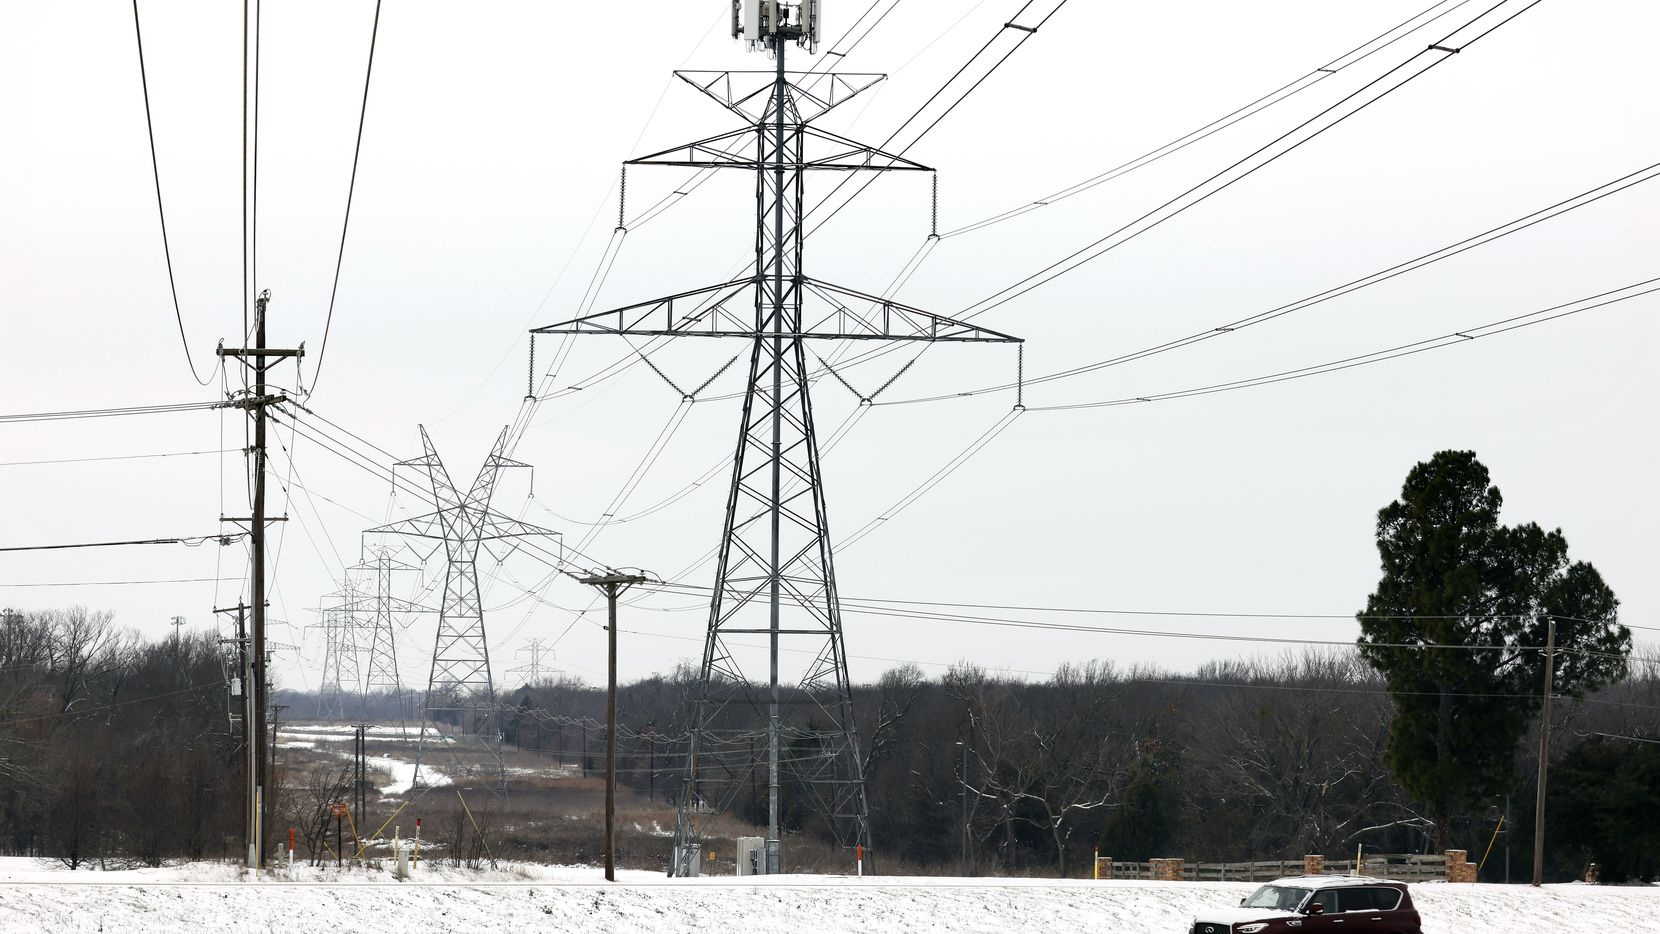 Last month's brutal winter storm shut down over half the power generation on ERCOT, the grid serving most of Texas. It also led to billions in costs for power companies, co-ops and utilities, and lawmakers are debating how to deal with the losses and improve the grid's reliability.